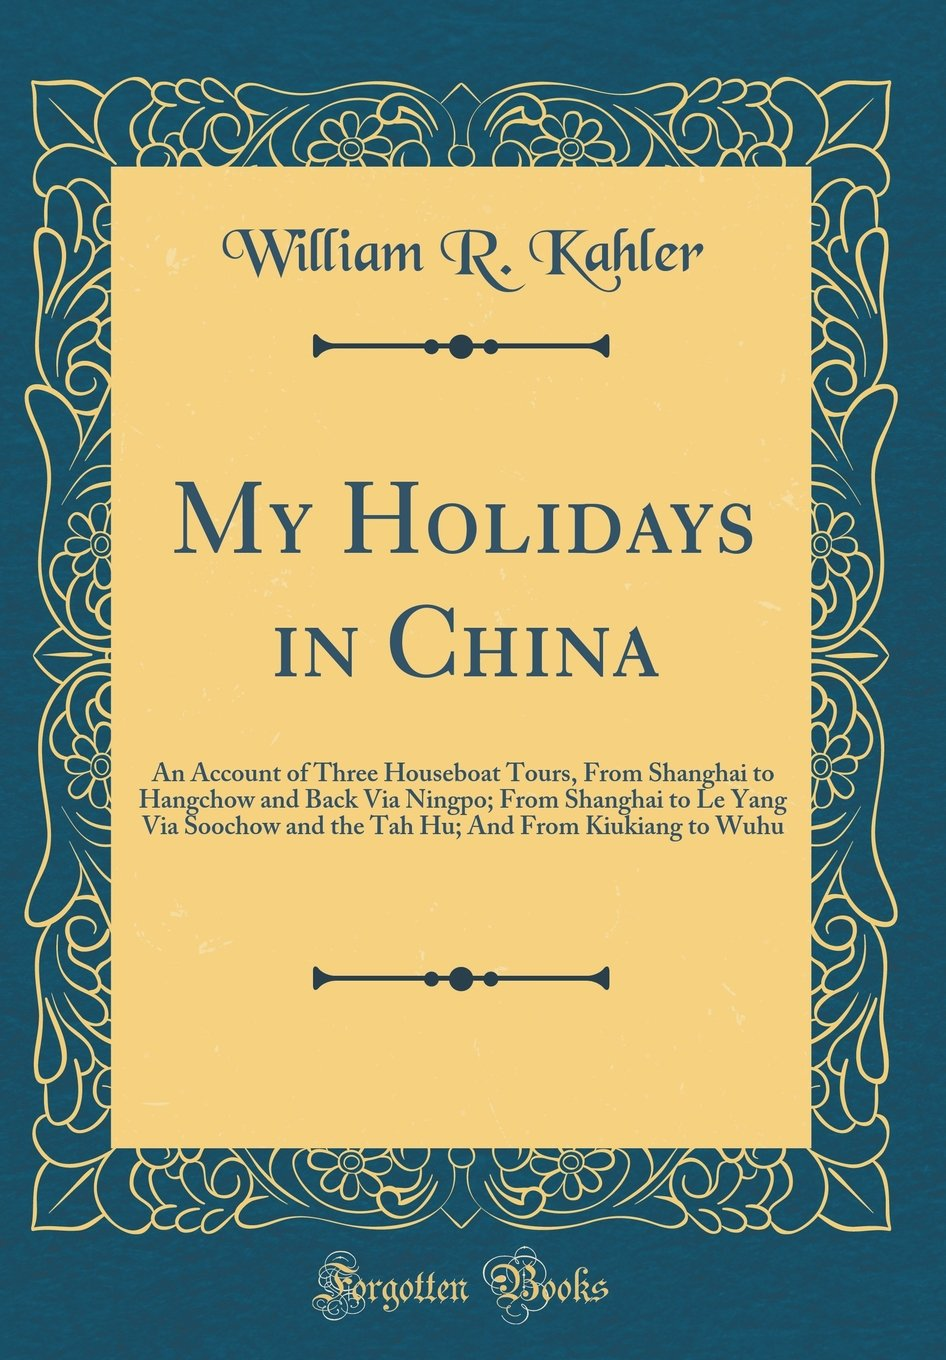 My Holidays in China: An Account of Three Houseboat Tours, From Shanghai to Hangchow and Back Via Ningpo; From Shanghai to Le Yang Via Soochow and the ... And From Kiukiang to Wuhu (Classic Reprint)